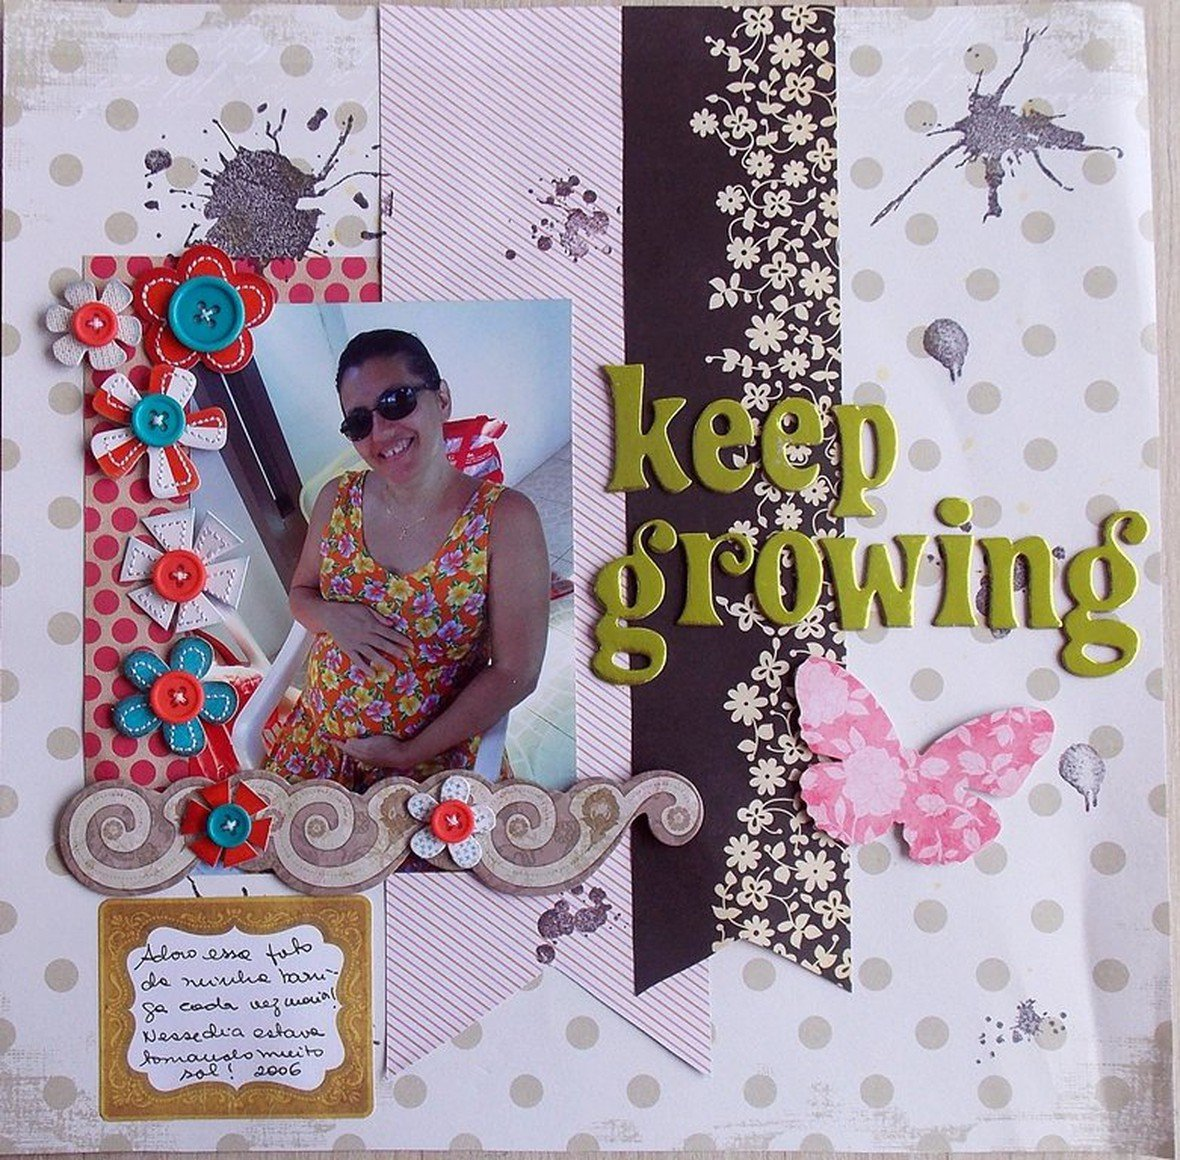 Keep growing menor original